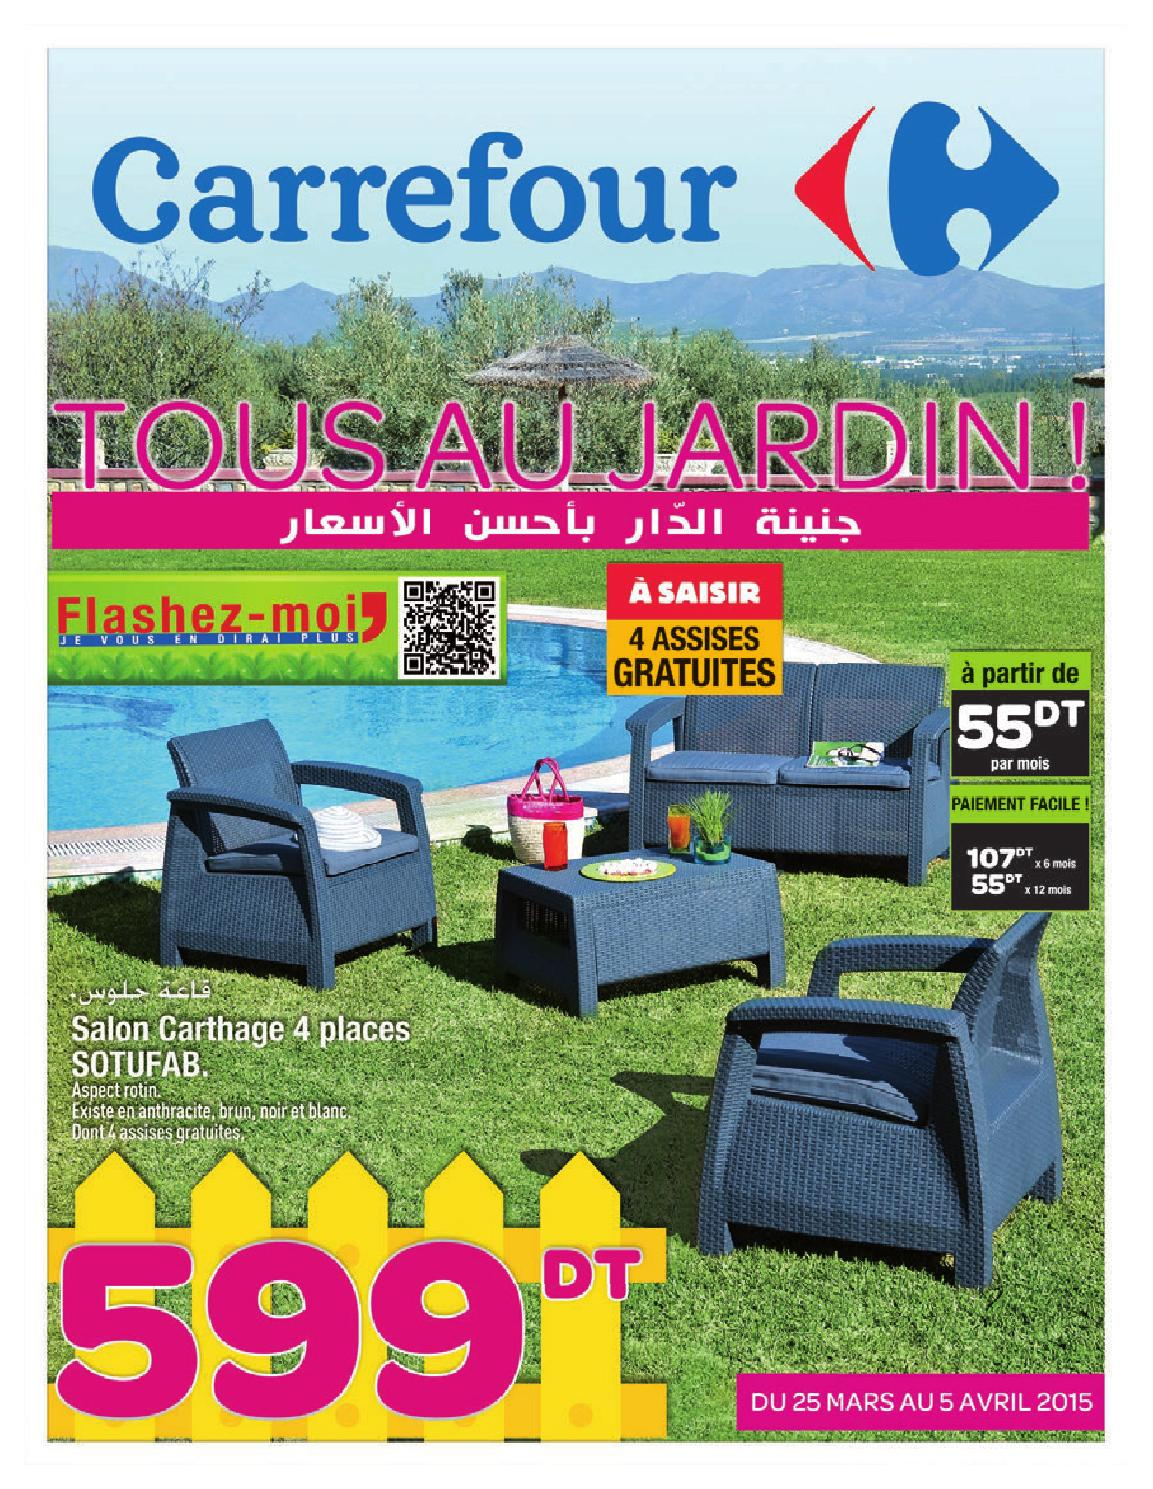 Catalogue carrefour tous au jardin by carrefour tunisie issuu - Carrefour maison de jardin ...